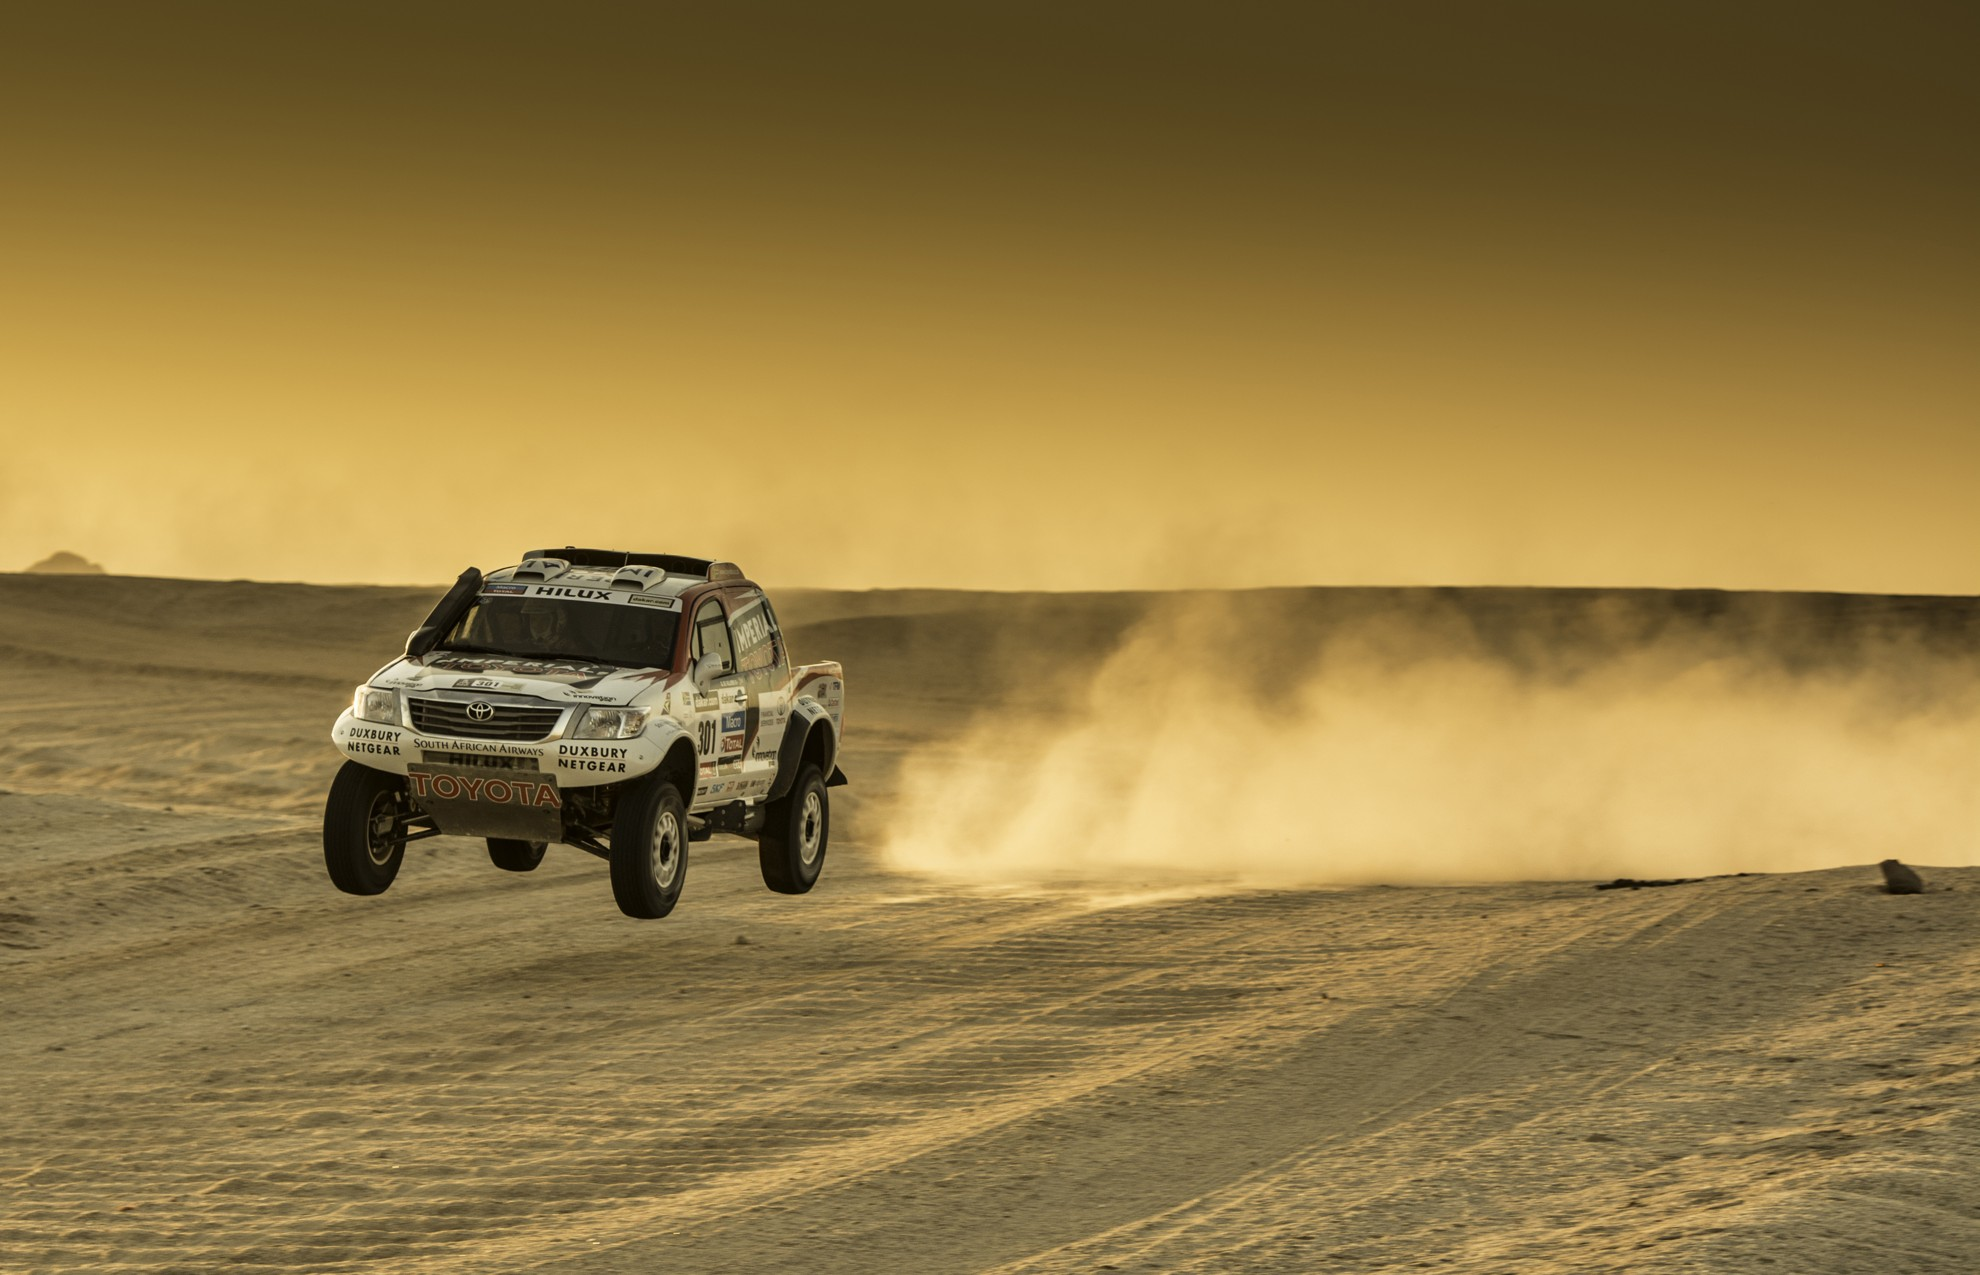 Dakar 2014 Rally Preparations Toyota Hilux South Africa